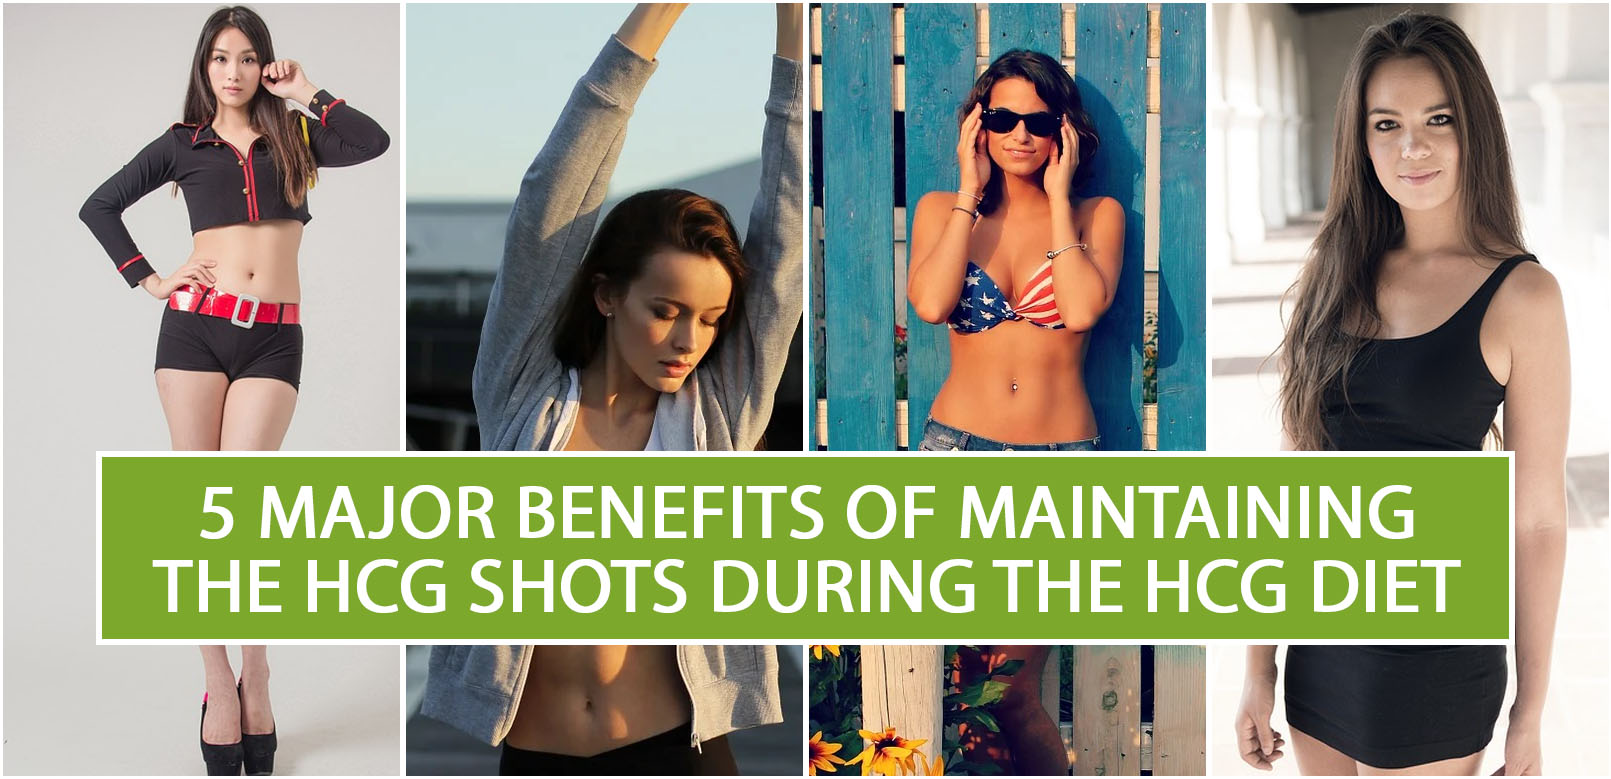 5 MAJOR BENEFITS OF MAINTAINING THE HCG SHOTS DURING THE HCG DIET